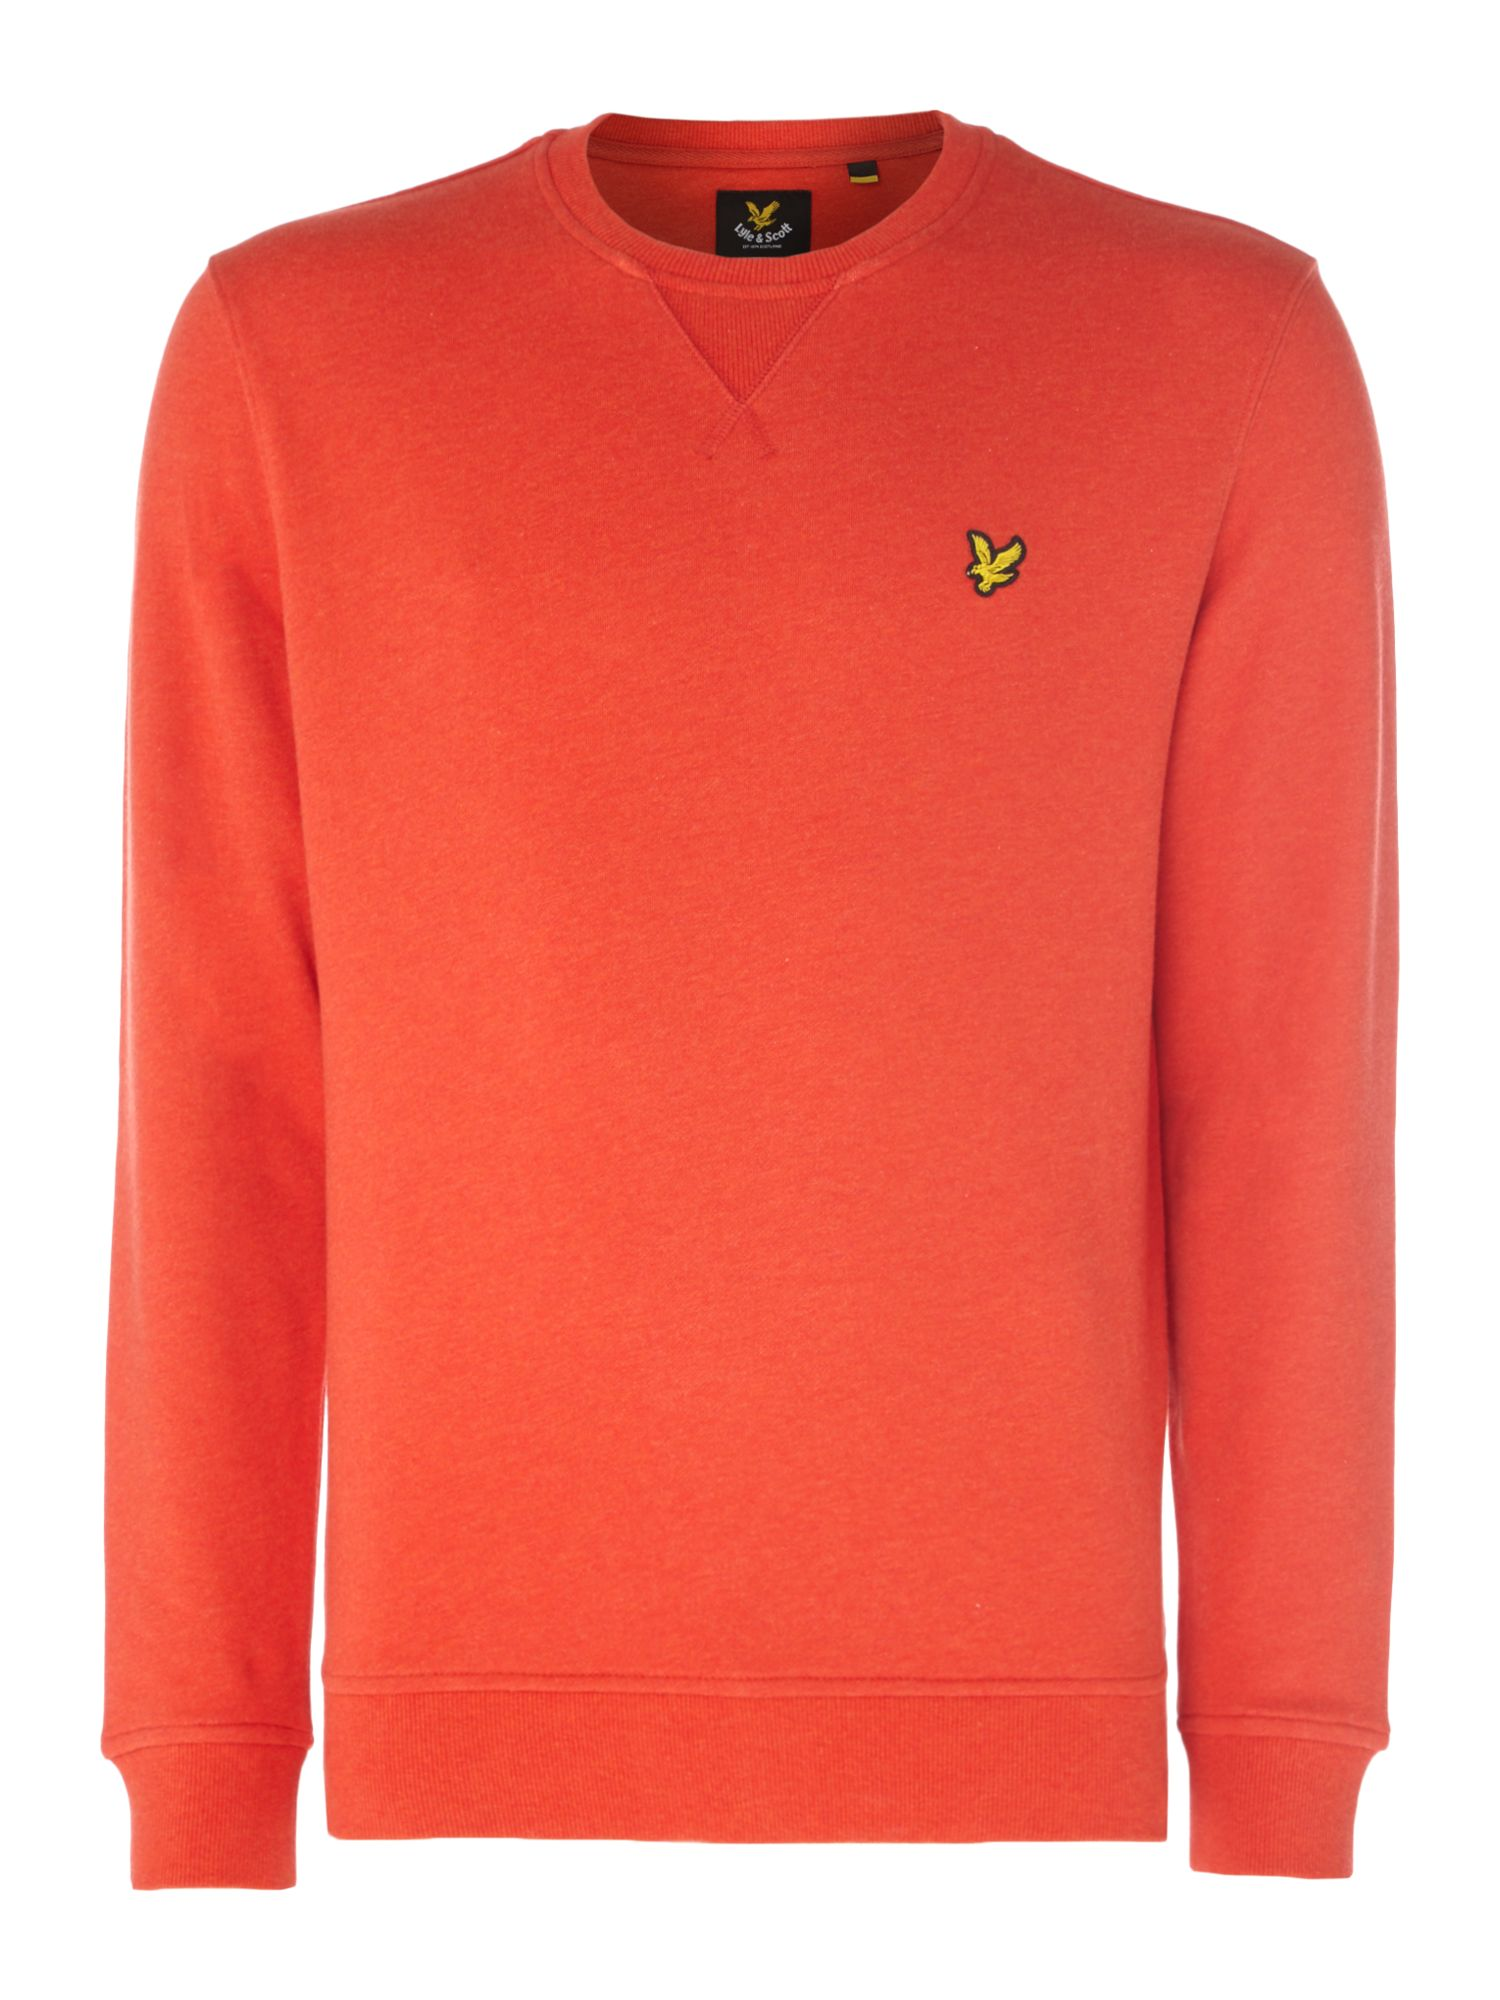 Men's Lyle and Scott Crew Neck Sweatshirt, Red